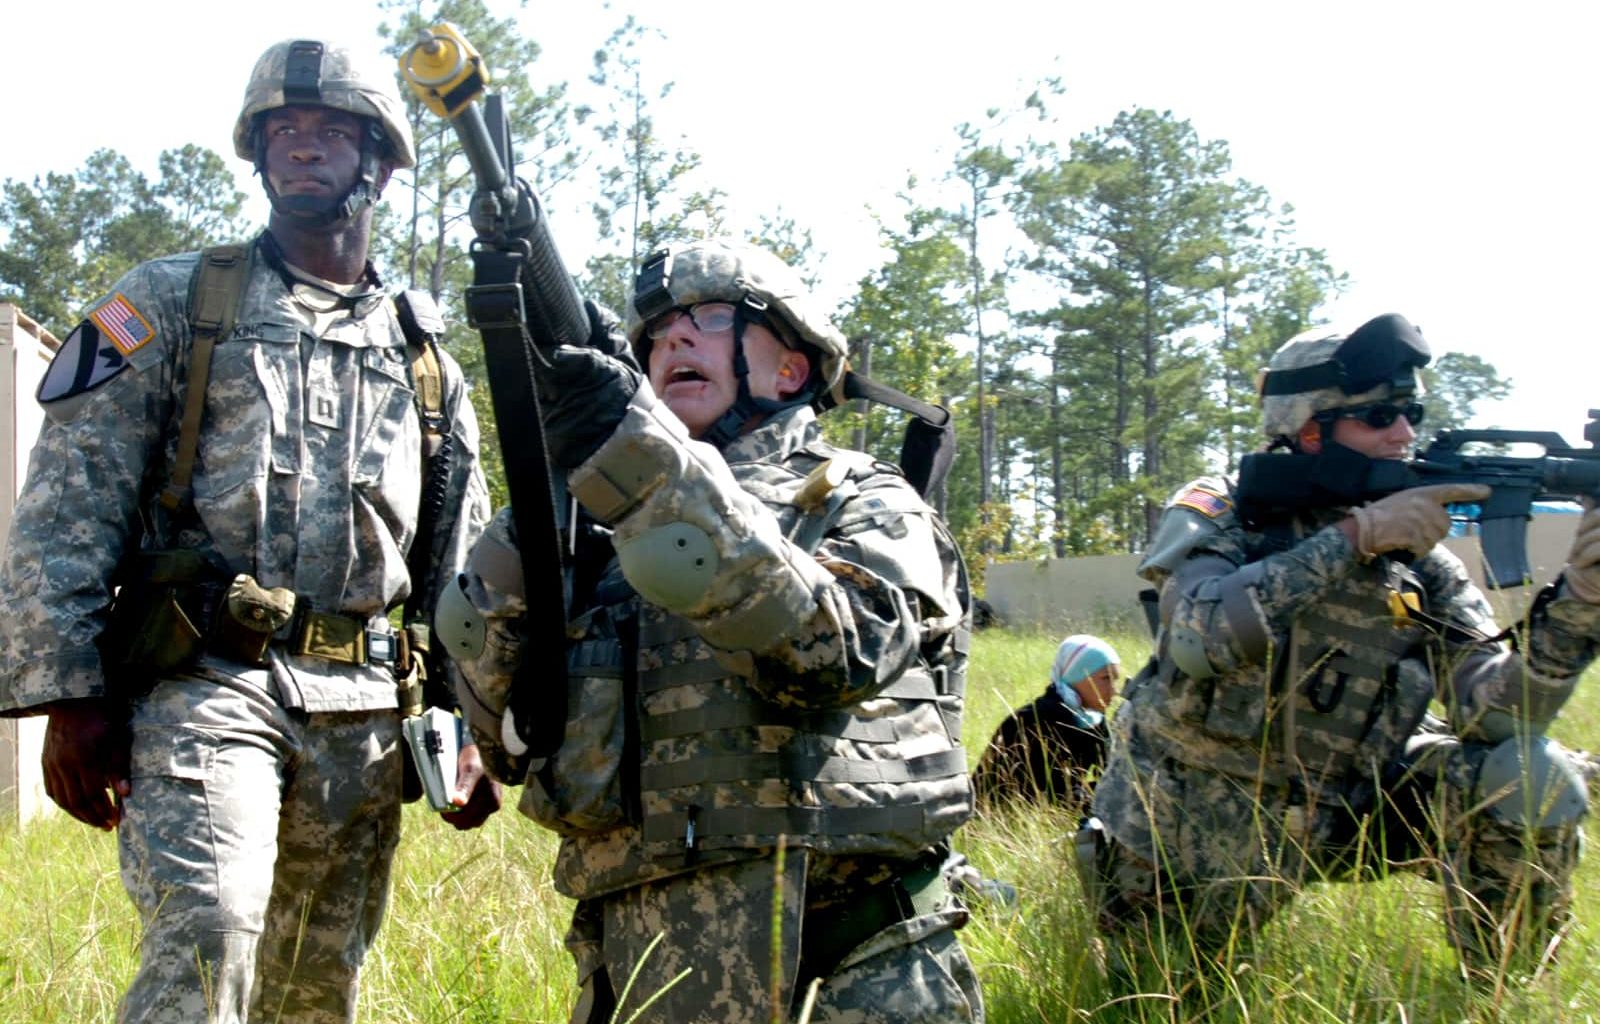 UPDATE Suspect Facing Multiple Charges For Jade Helm Shooting Incidents In Mississippi